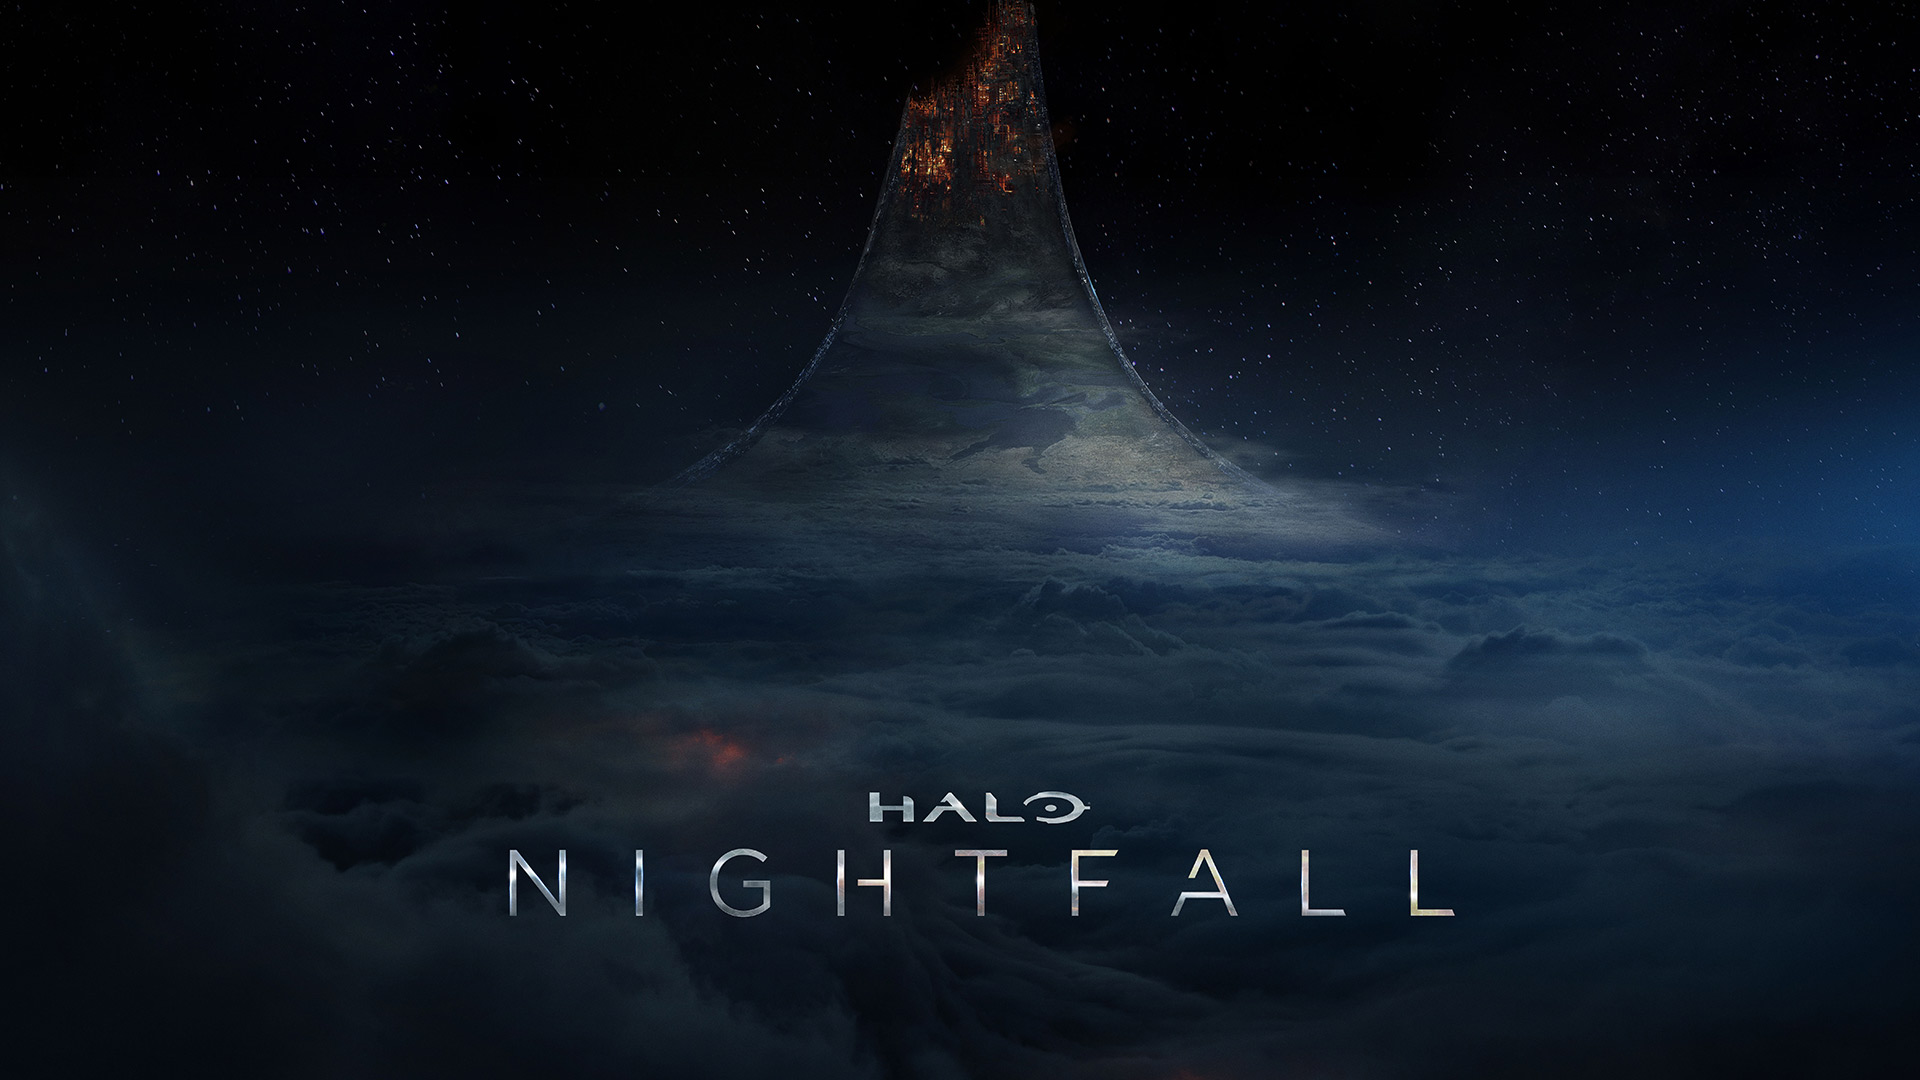 http://img3.wikia.nocookie.net/__cb20140609194152/halo/images/2/25/Halo-Nightfall-Wallpaper.jpeg